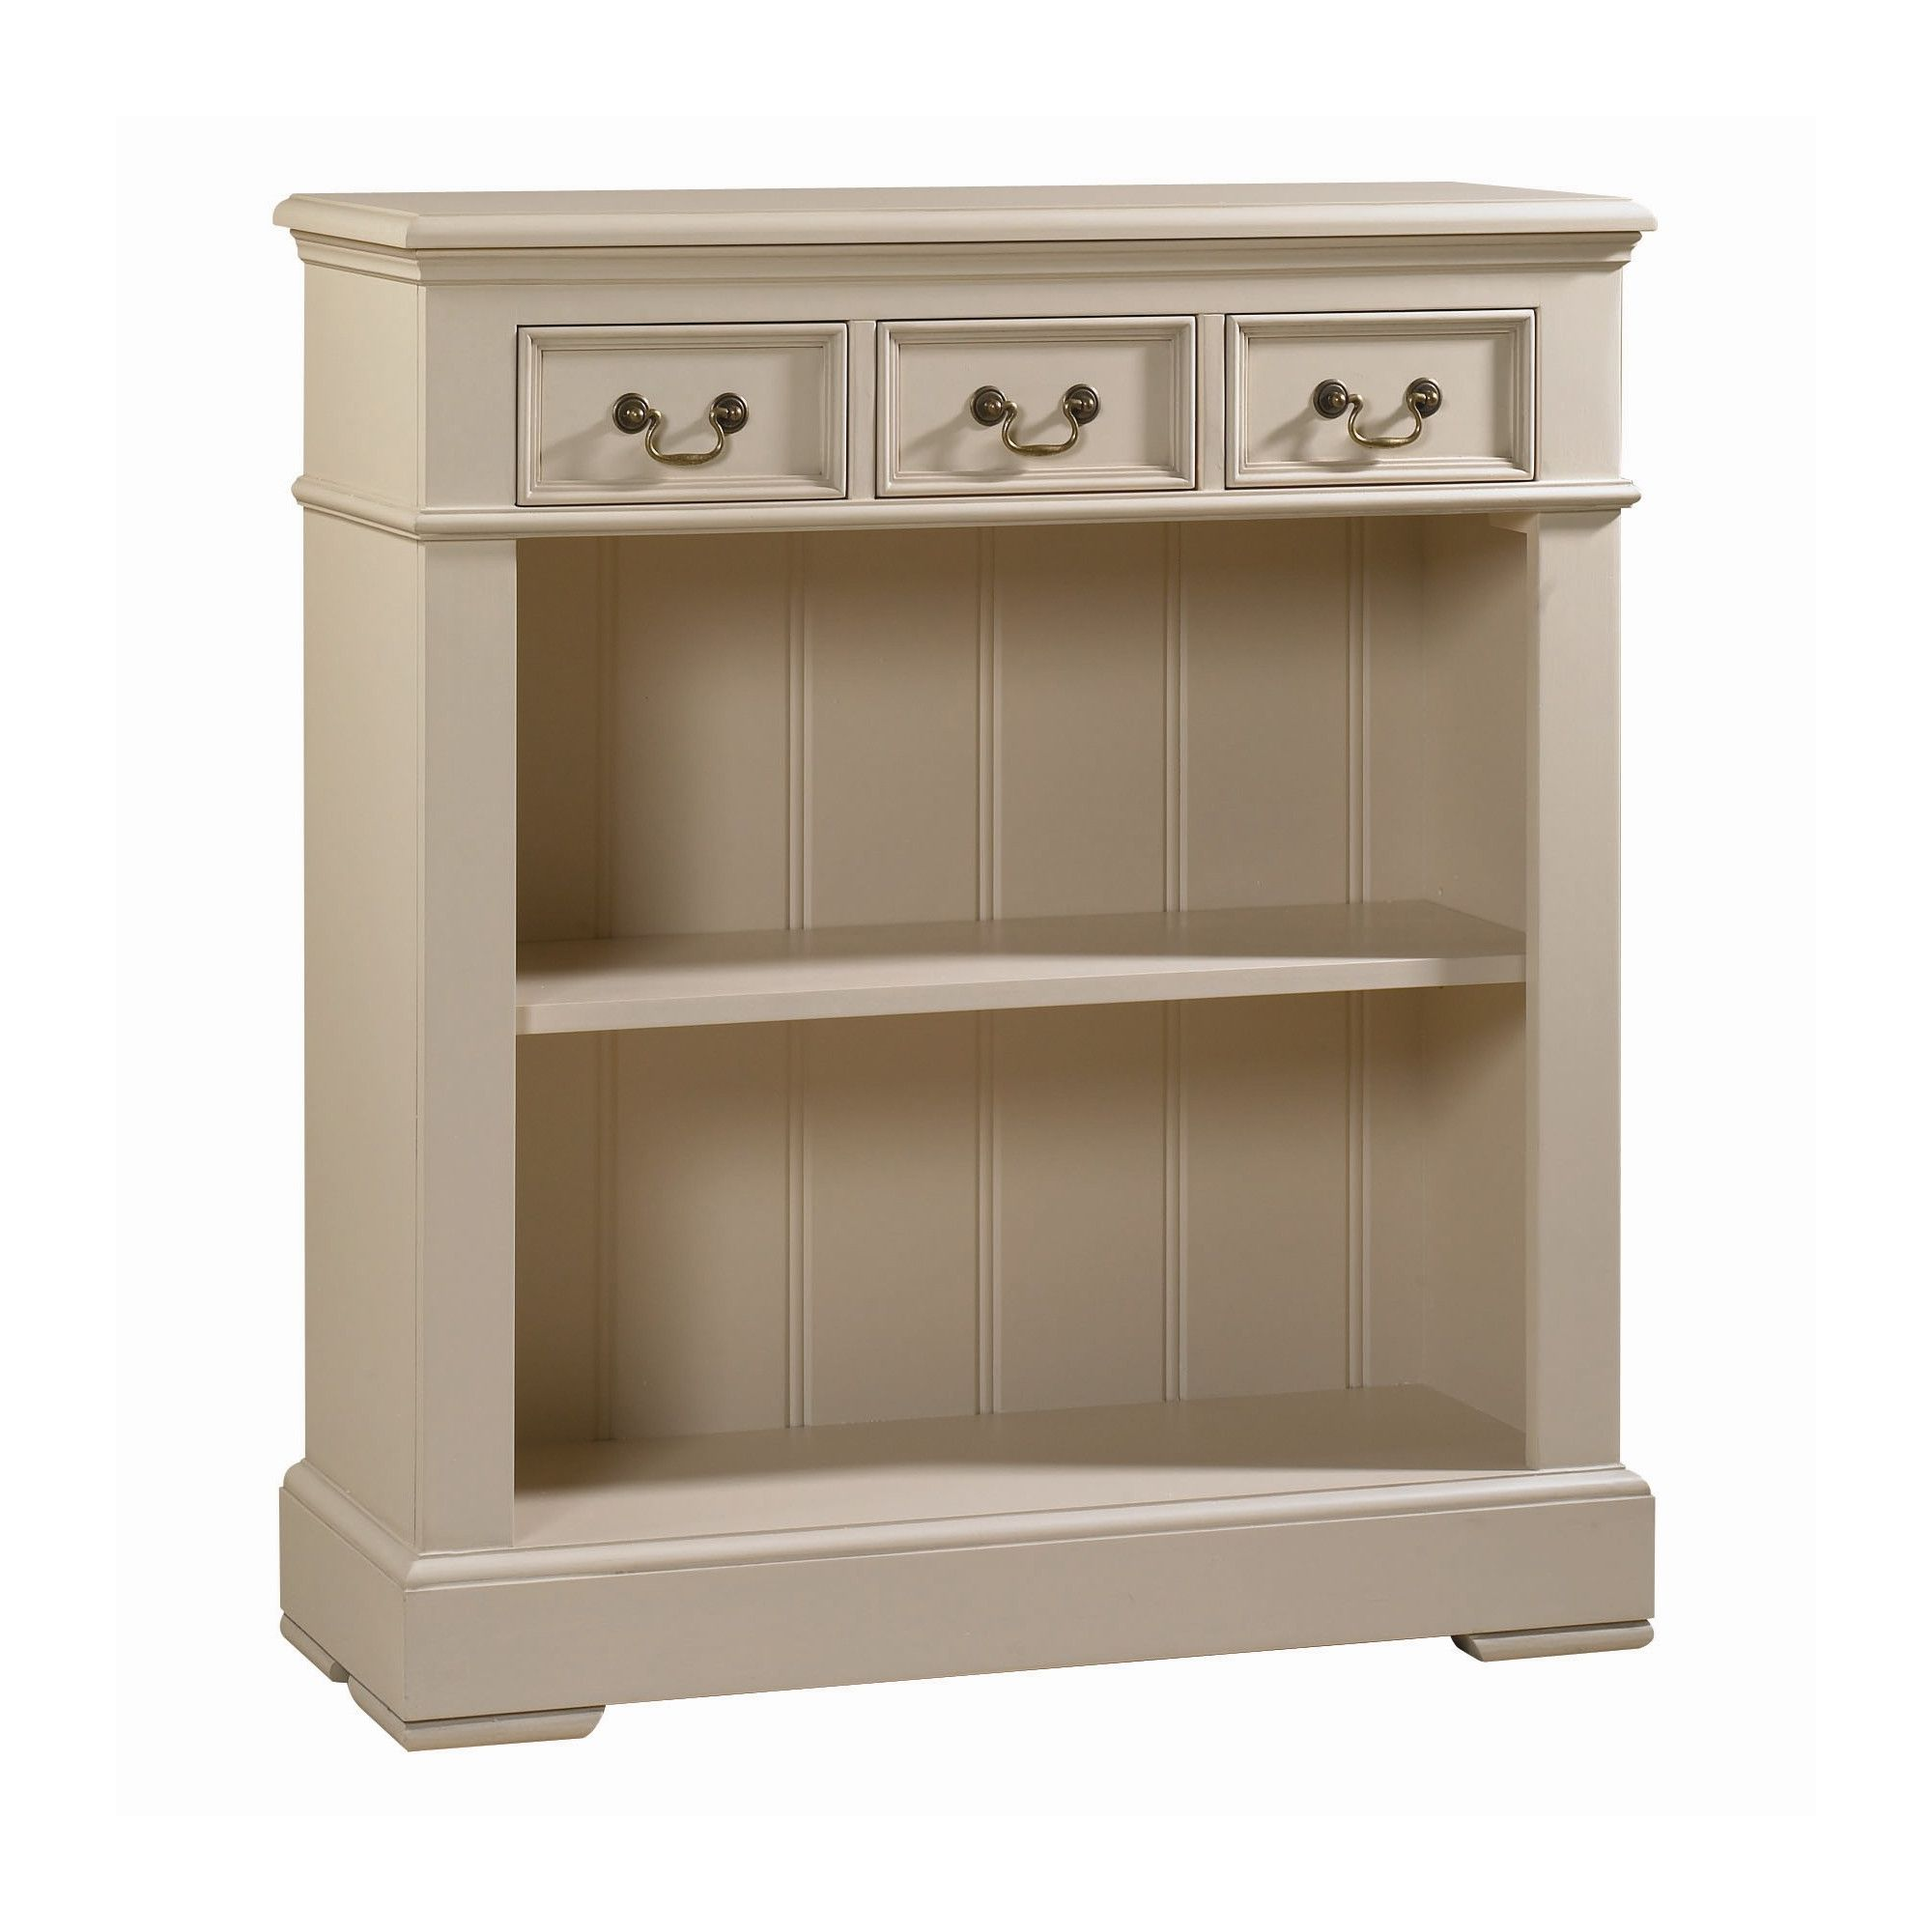 YP Furniture Bookcase - Ivory at Tesco Direct